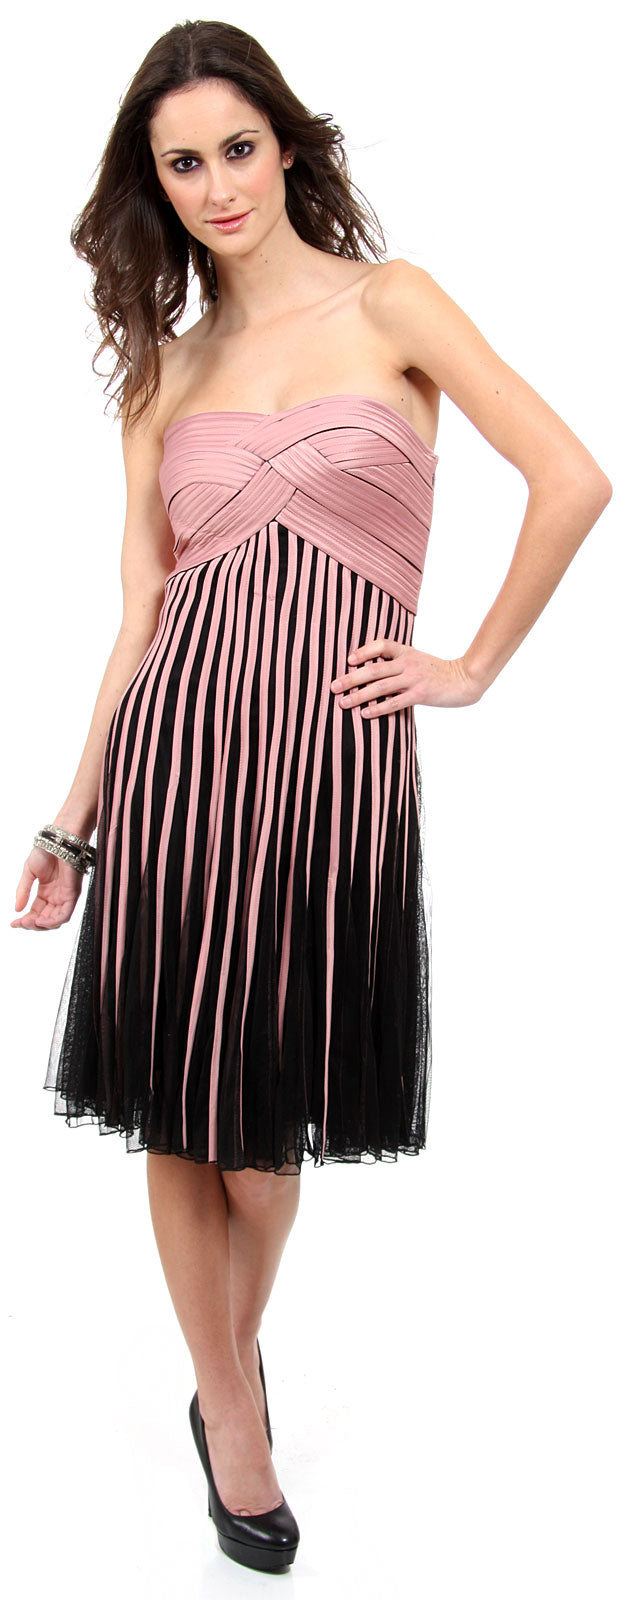 Main image of Strapless Knee Length Party Dress With Braided Bustline